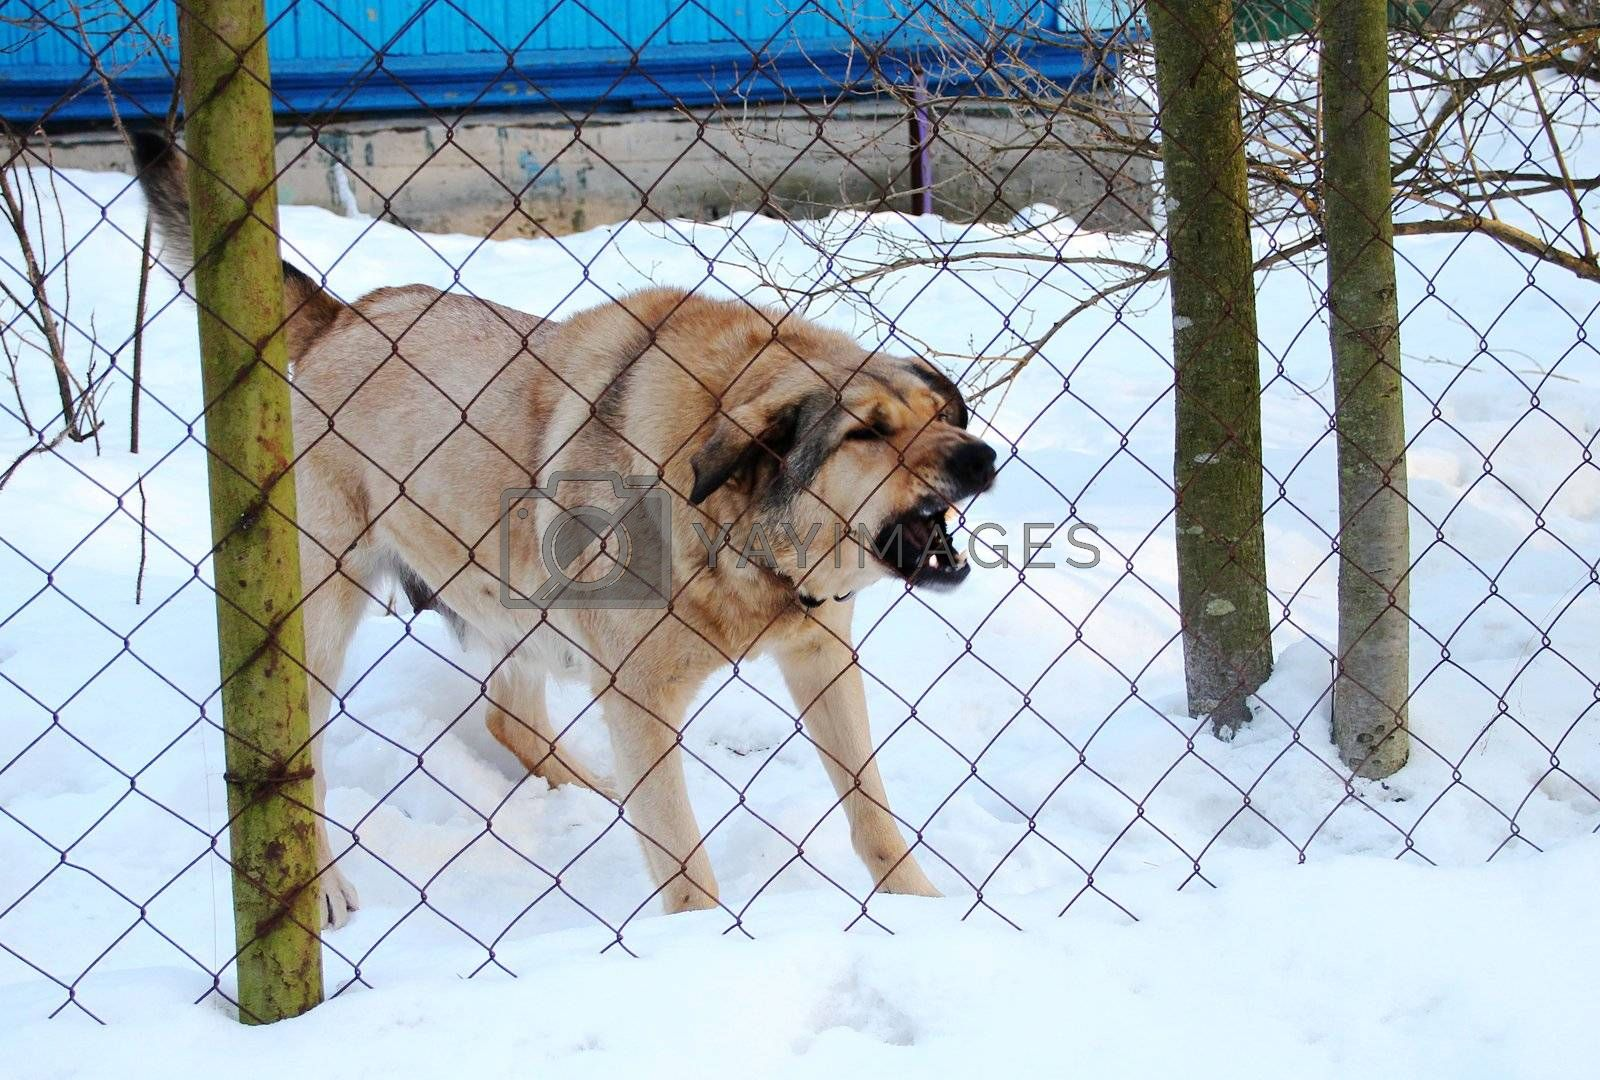 Beige dog barks, the guards behind the fence in the winter